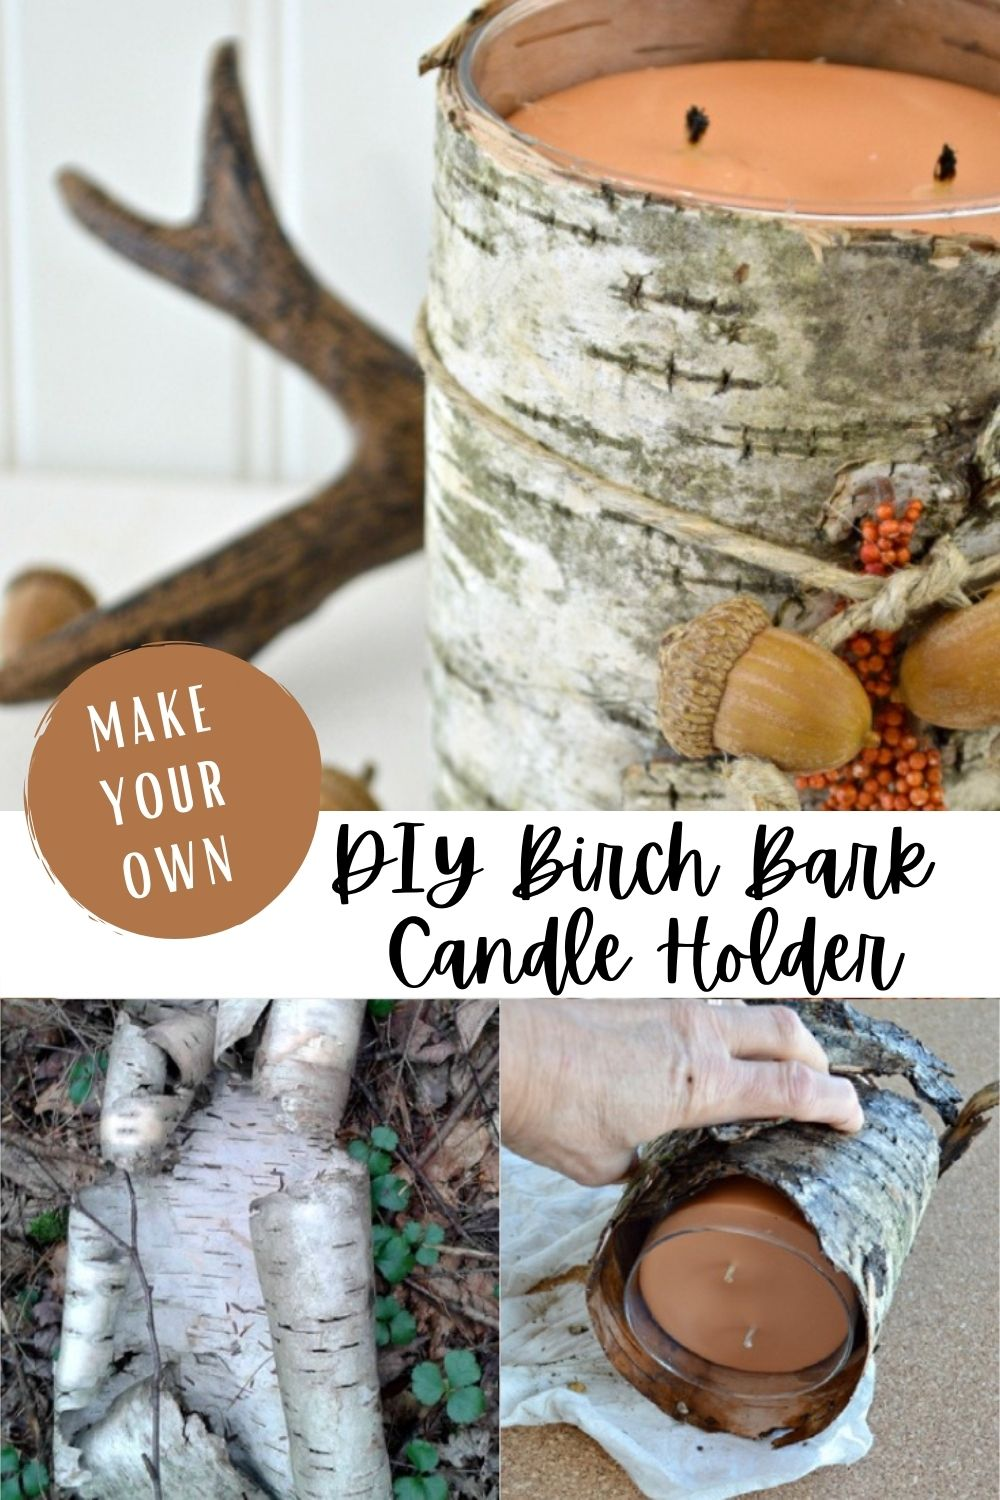 DIY birch bark covered candle tutorial.  Make this upscale fall decor with a scented candle. Dress up plain candles for fall.   I share where to find birch bark. #falldecor #birchbark #candles via @h2obungalow